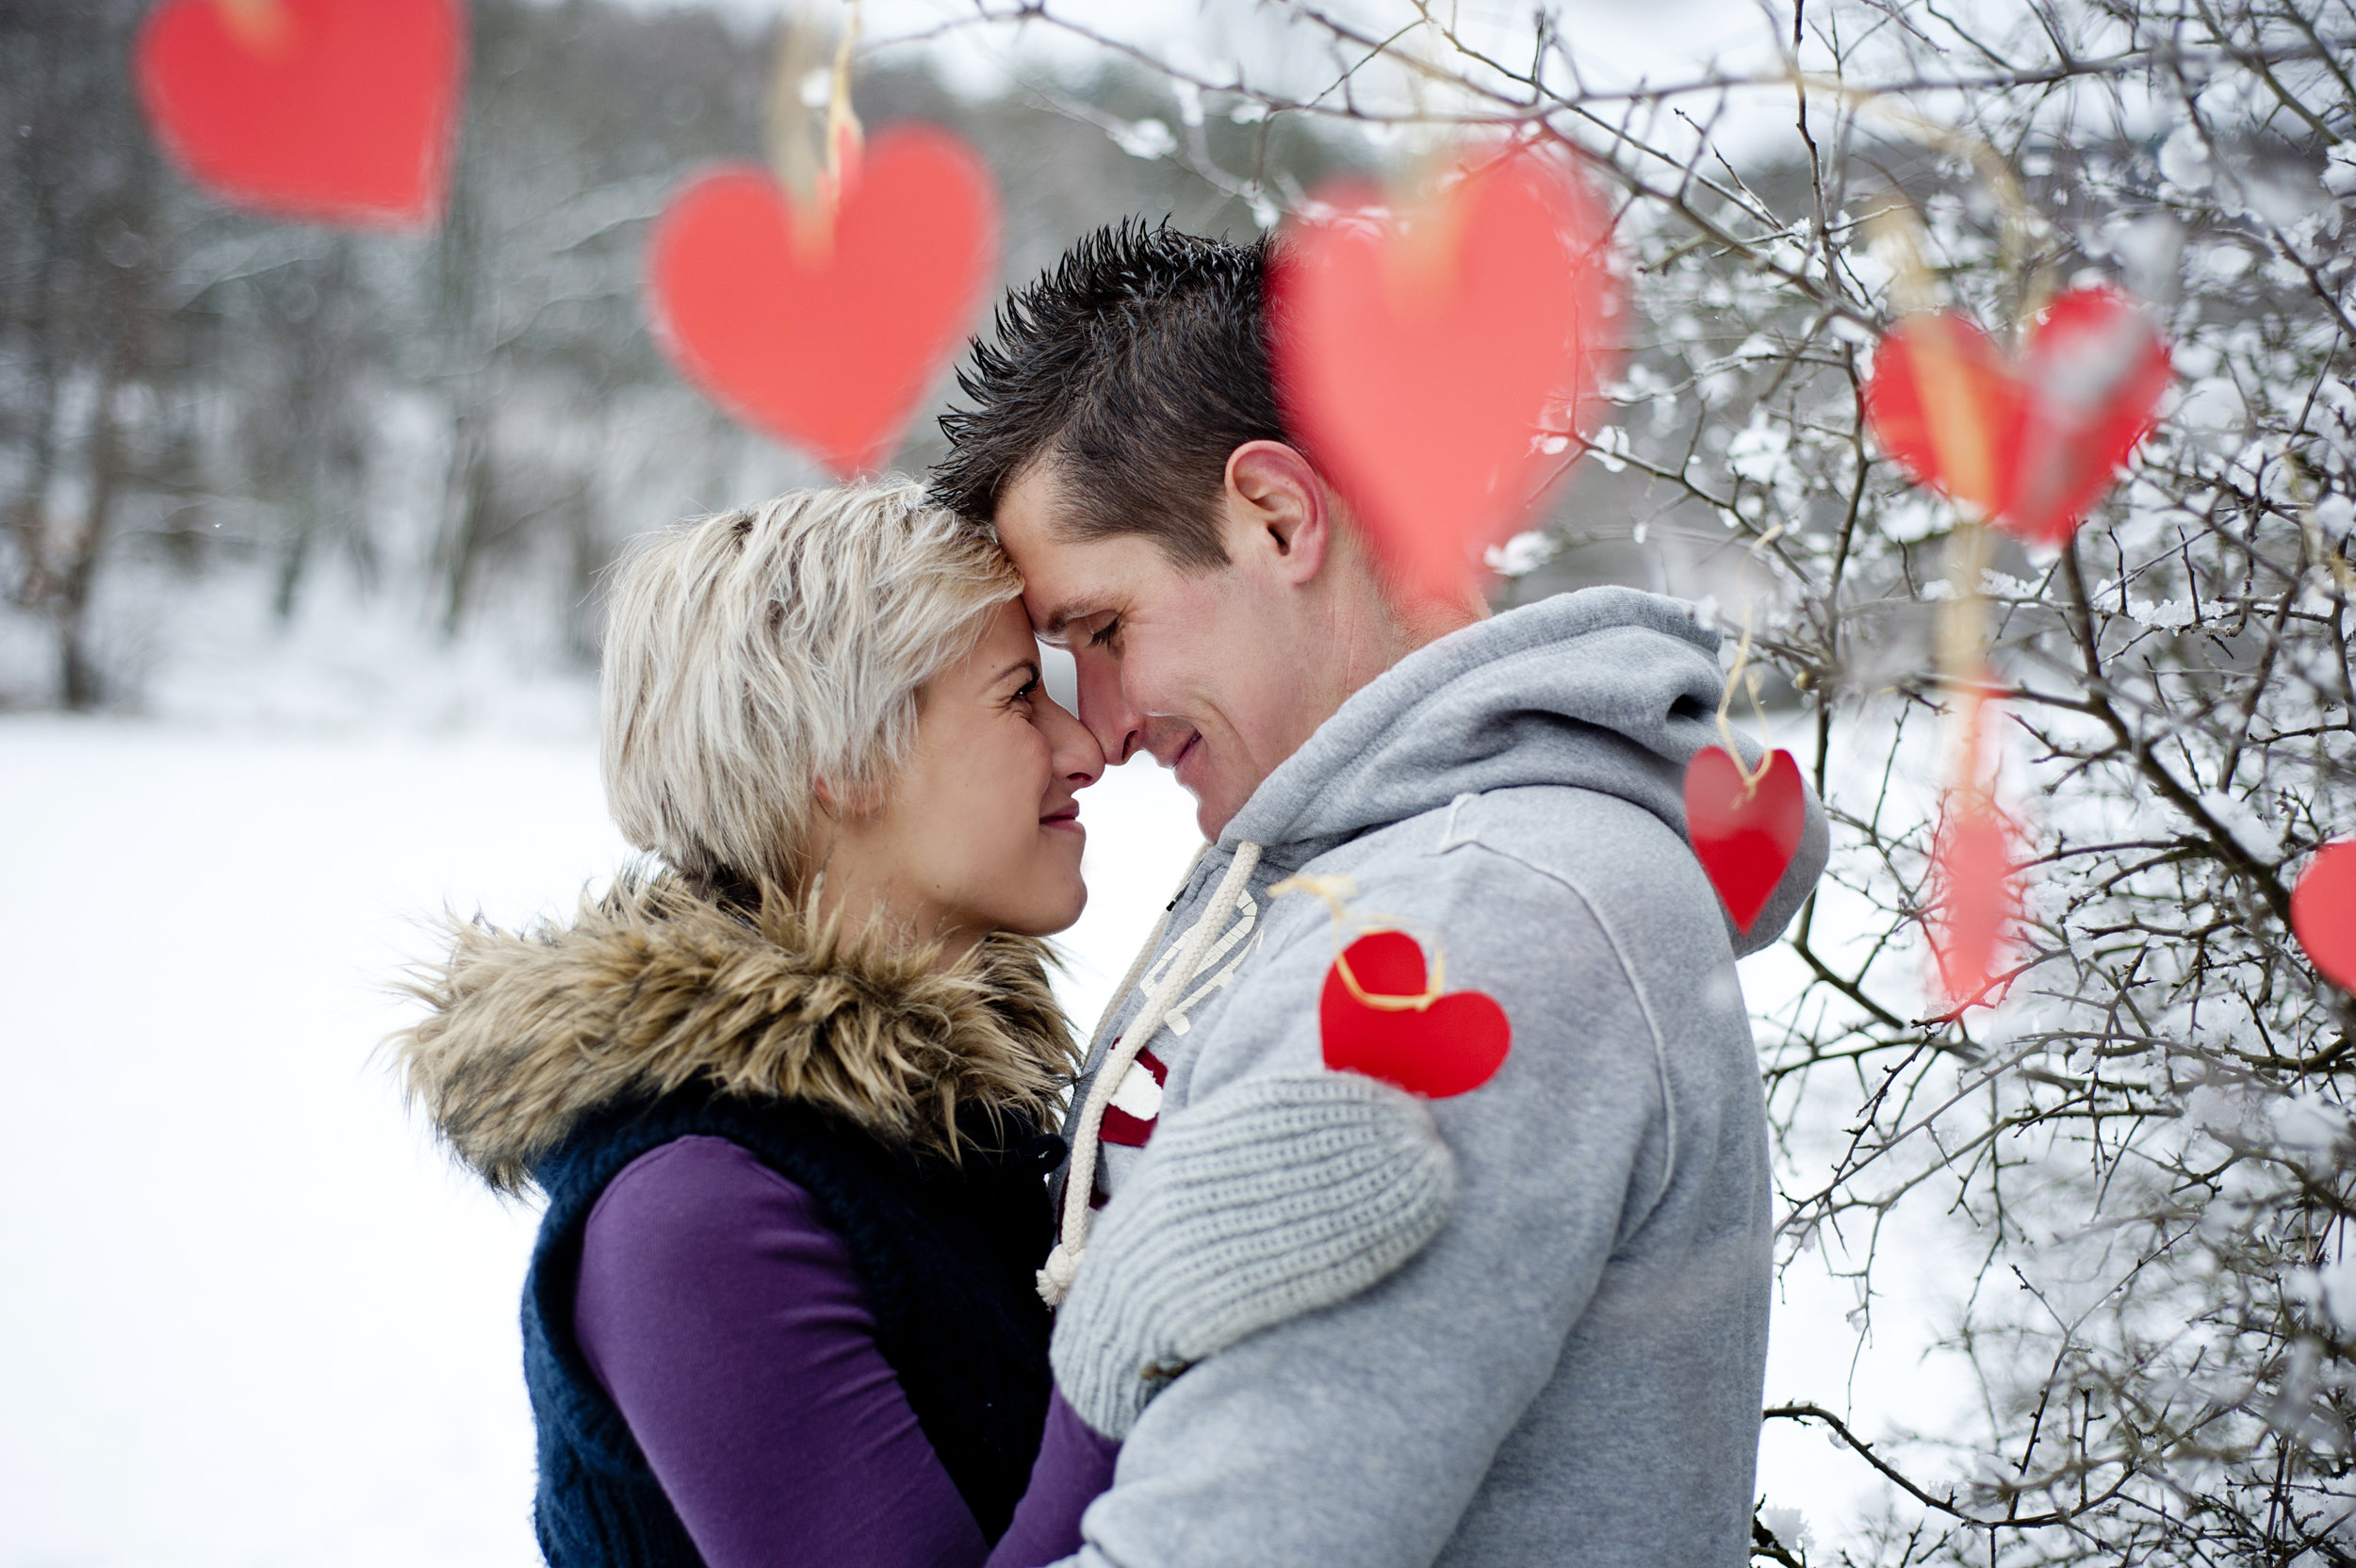 graphicstock-happy-couple-is-having-romantic-time-in-snowy-countryside_HCWvgAn9bW.jpg